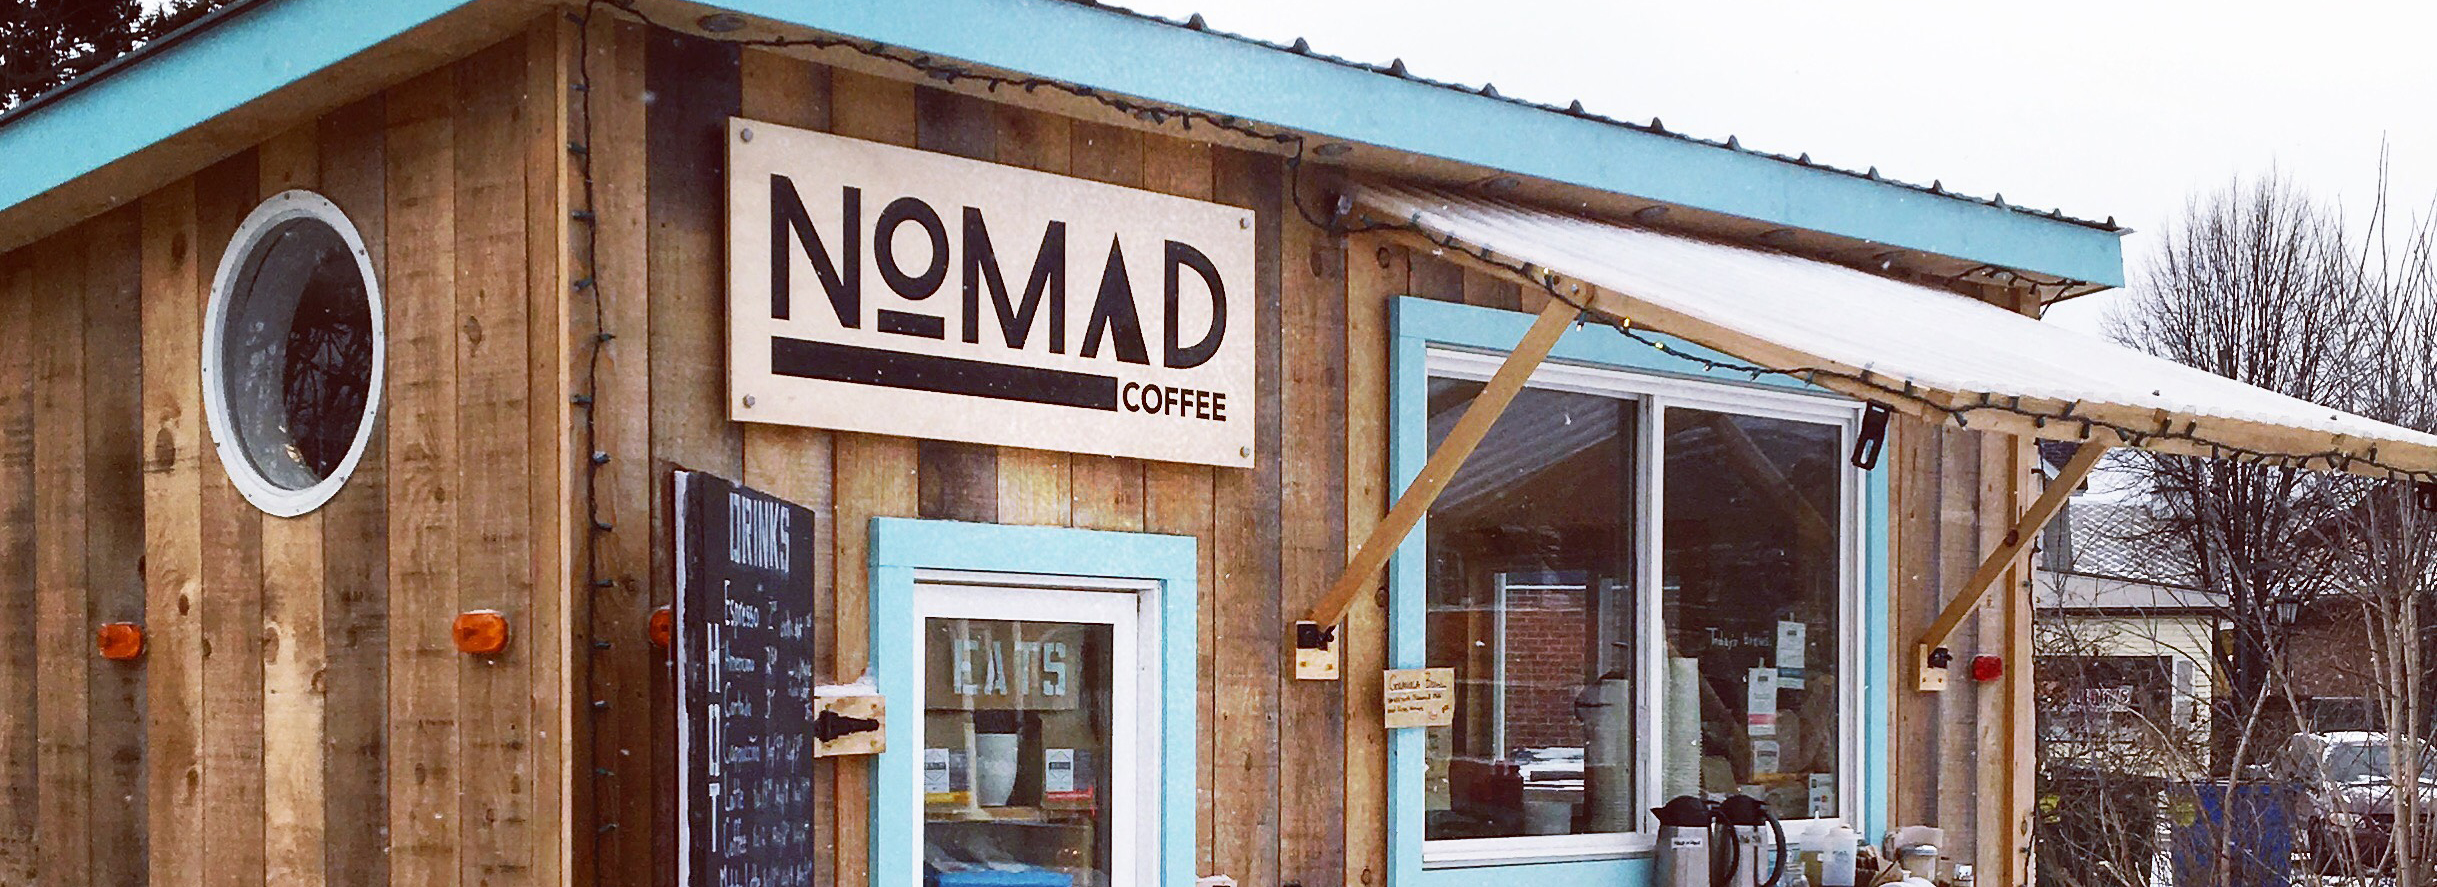 Nomad Coffee Essex Vermont Travel Like A Local Vermont